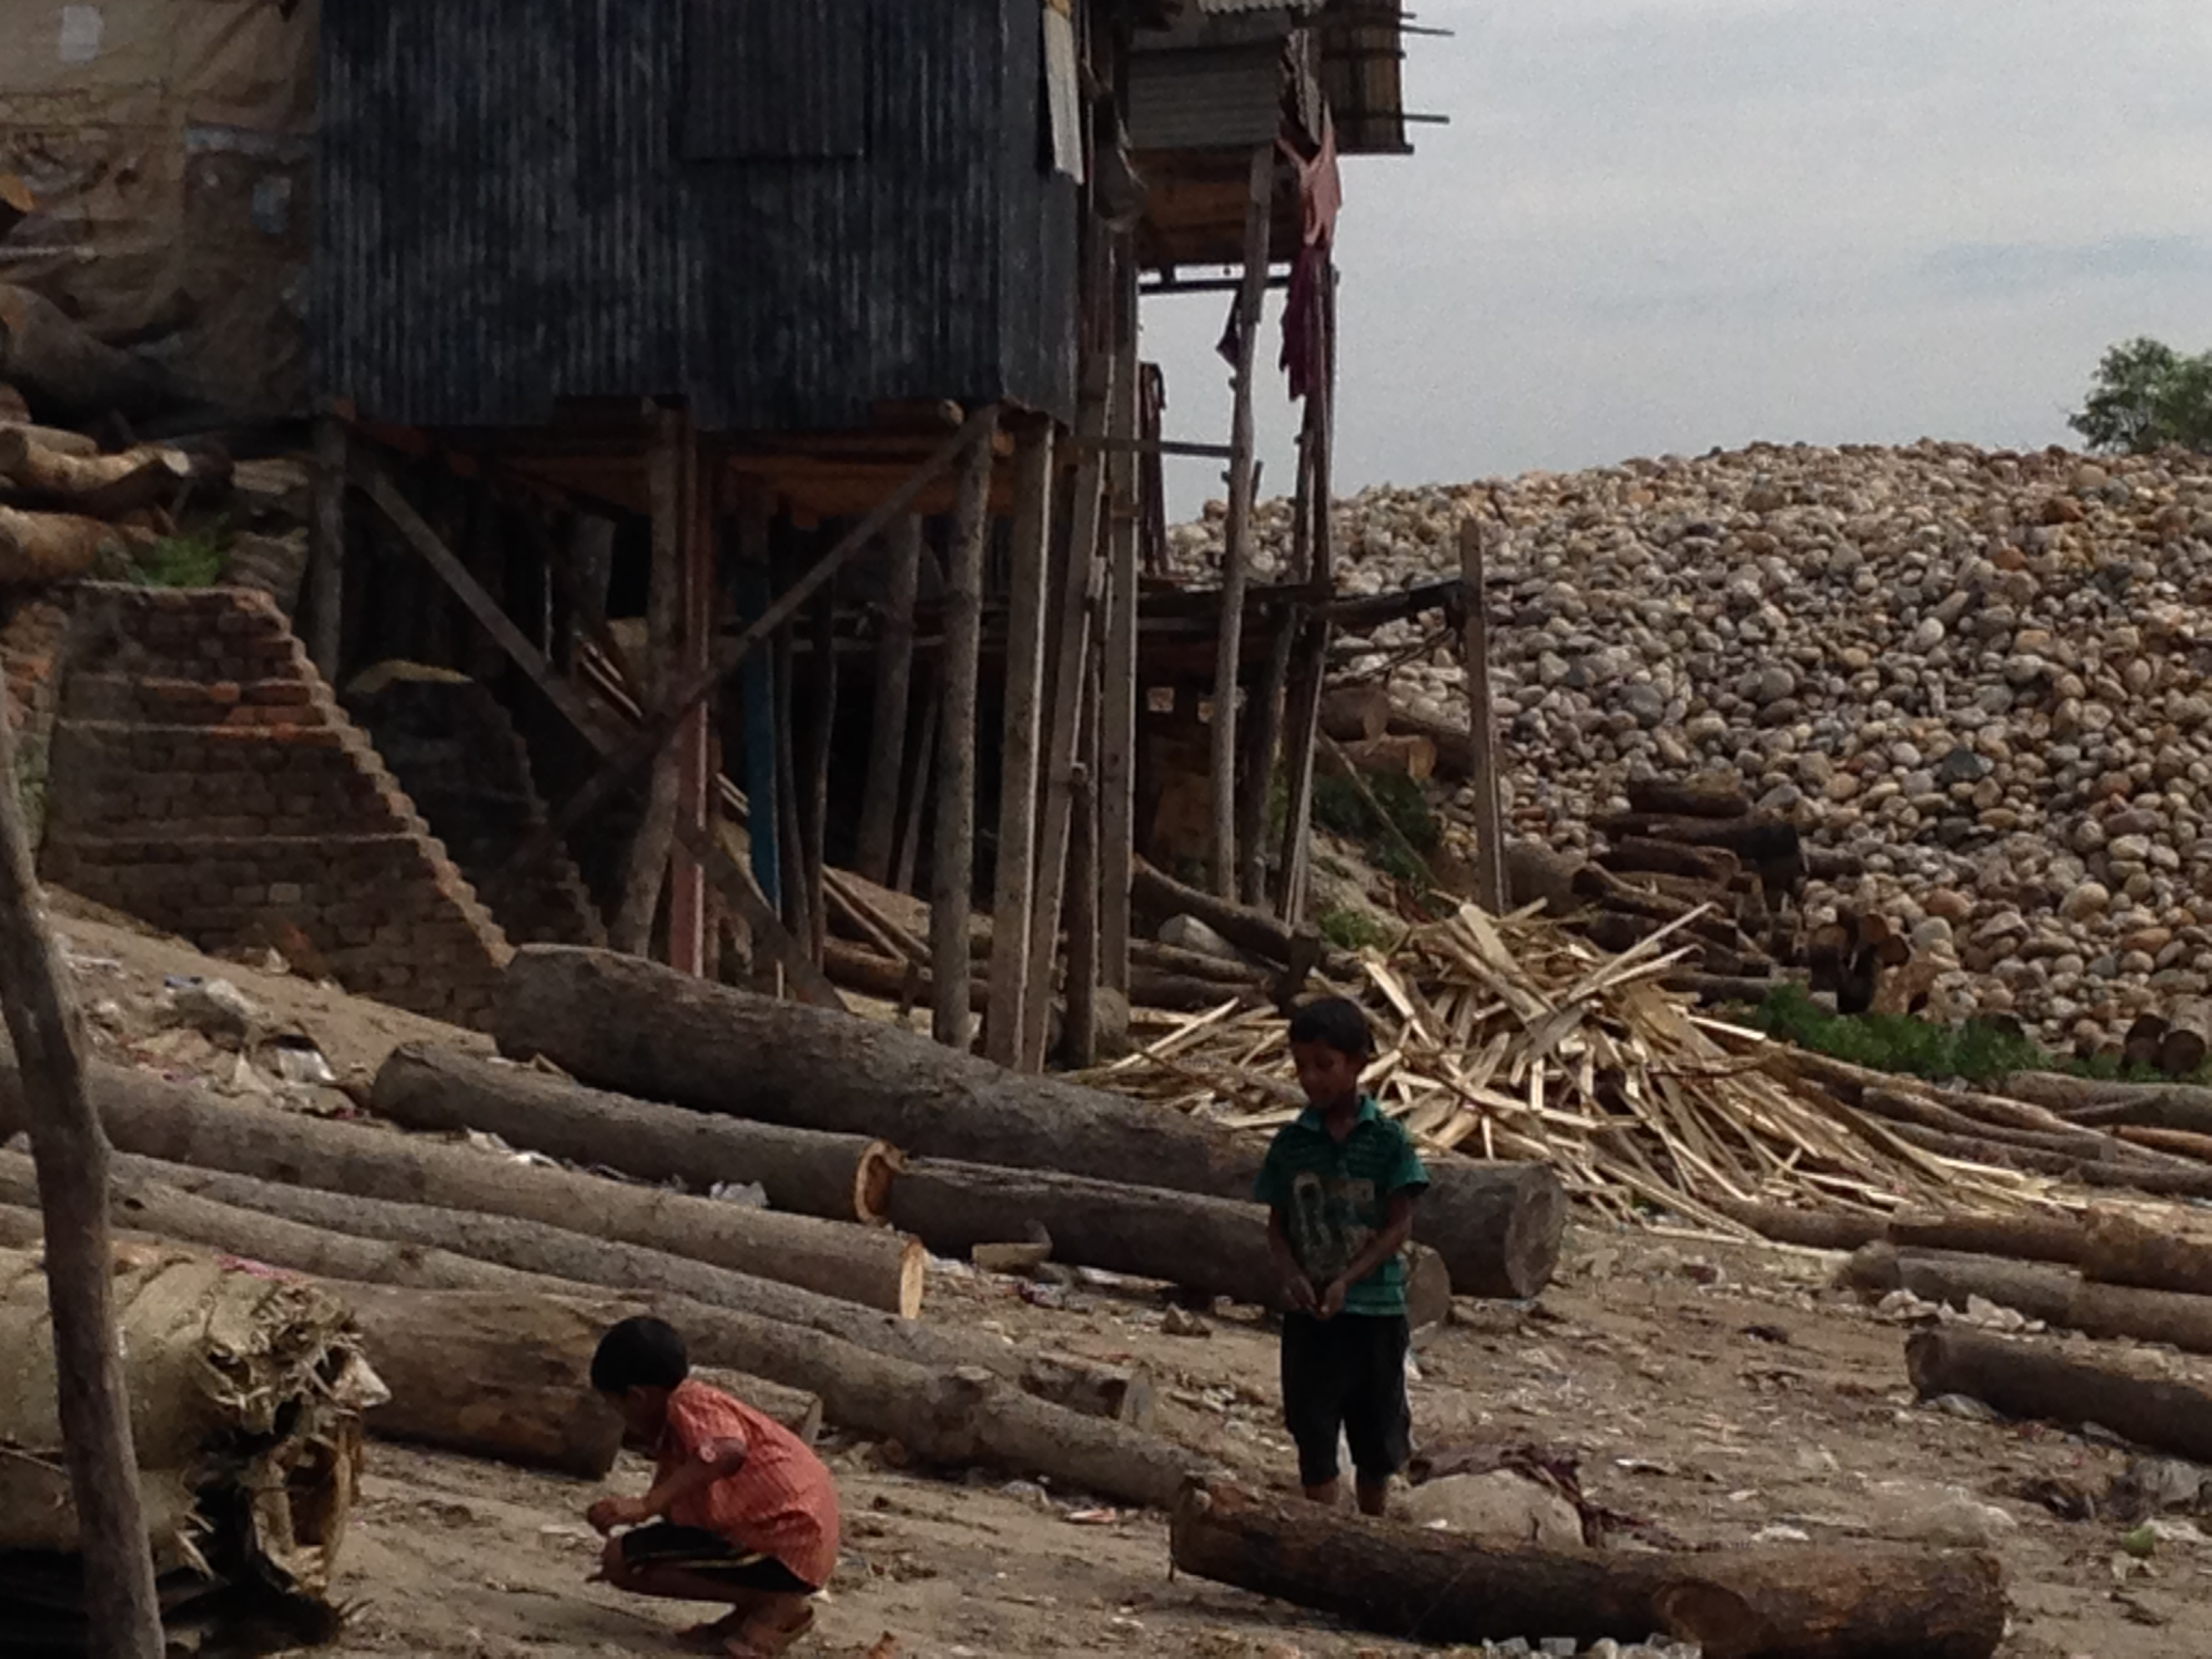 Children playing near tannery waste